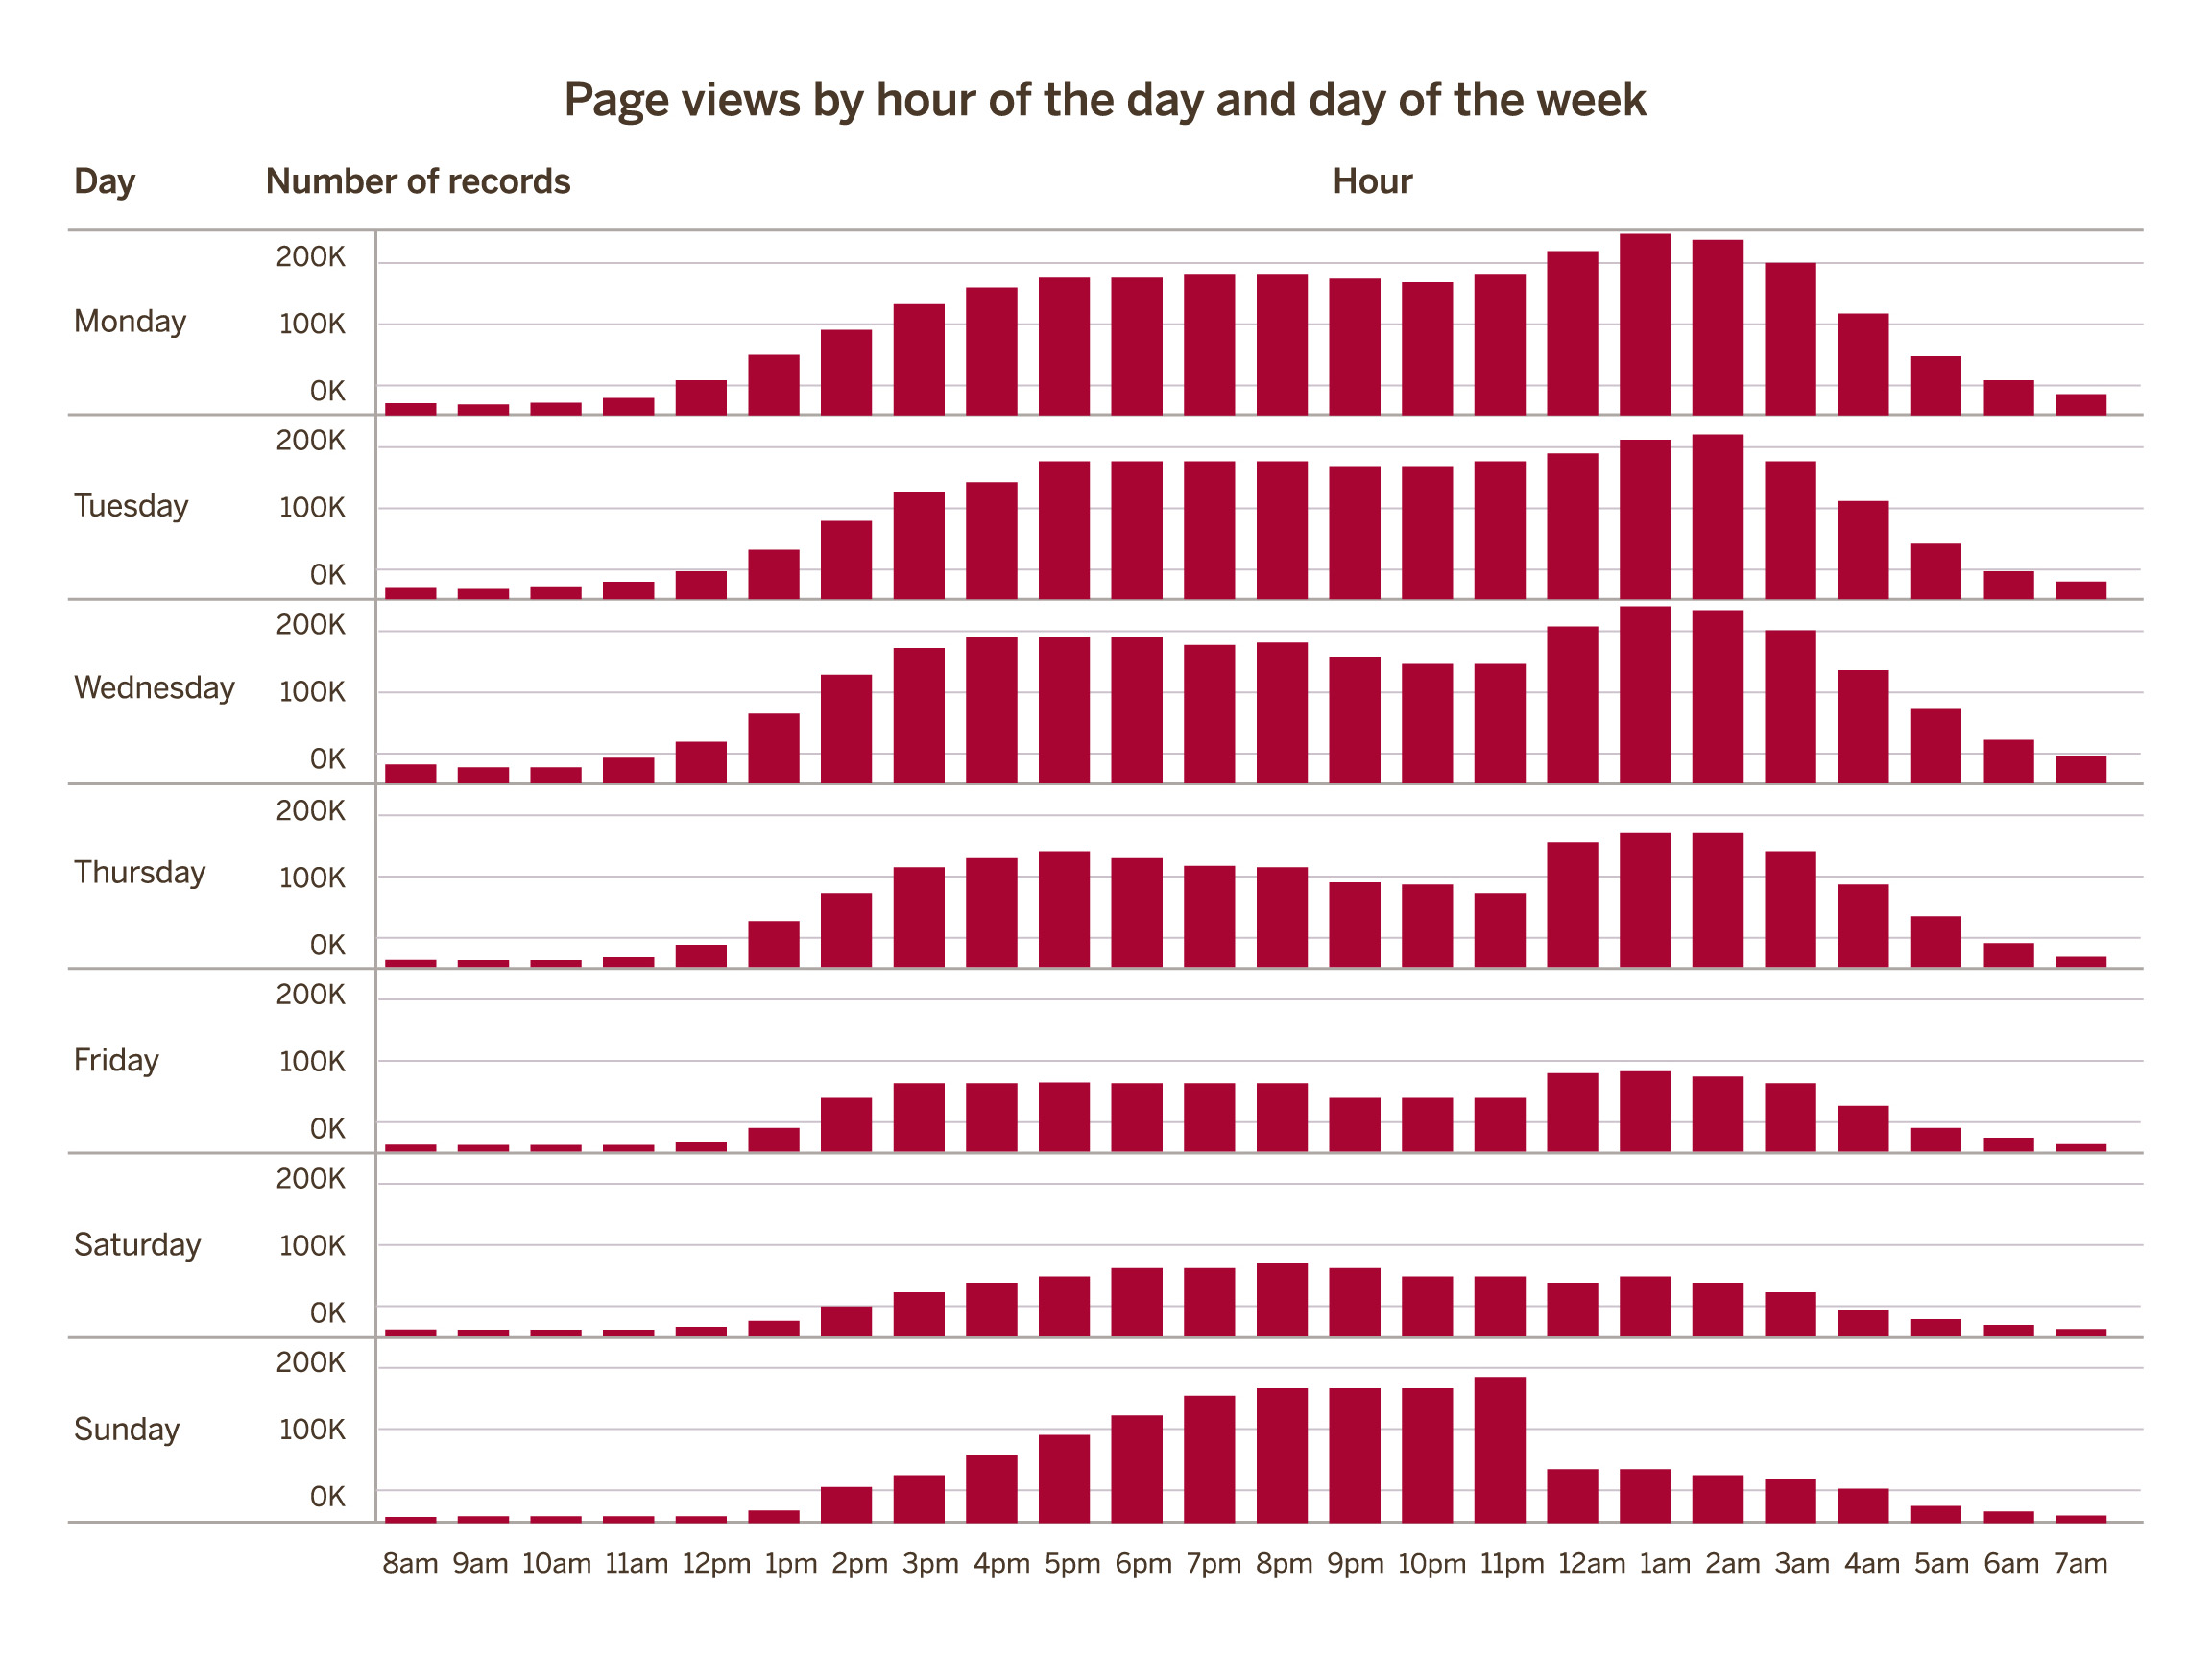 Page views by hour of the day and day of the week